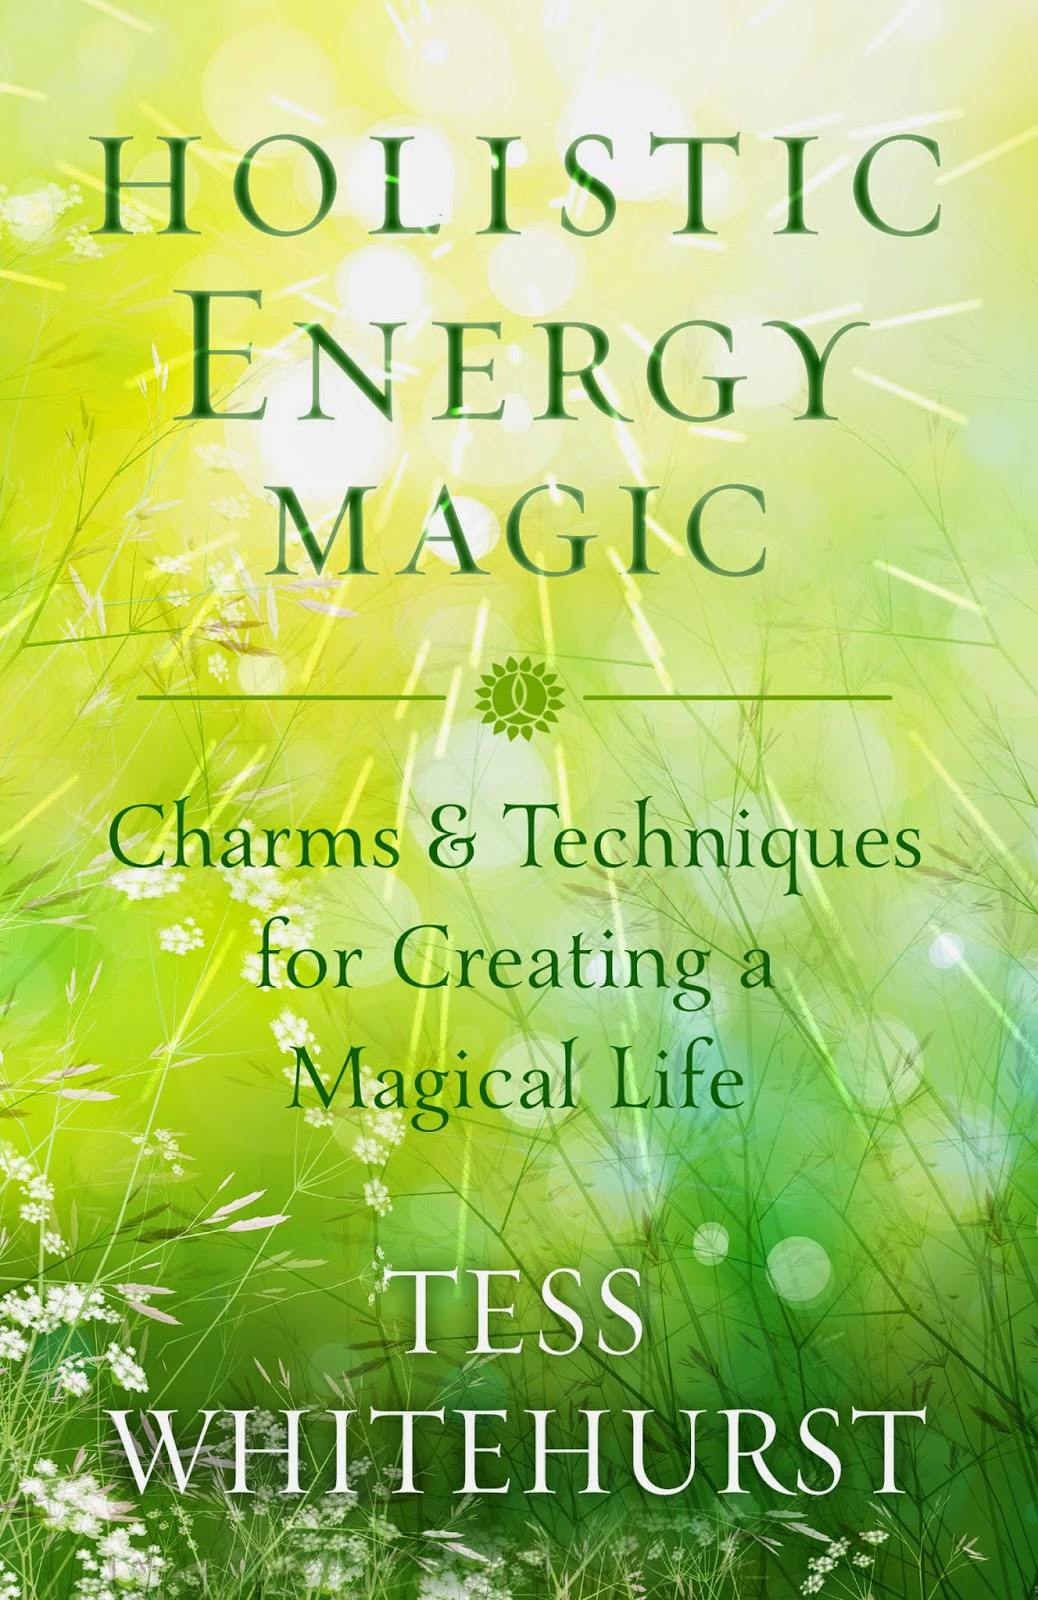 http://www.amazon.com/Holistic-Energy-Magic-Techniques-Creating/dp/0738745375